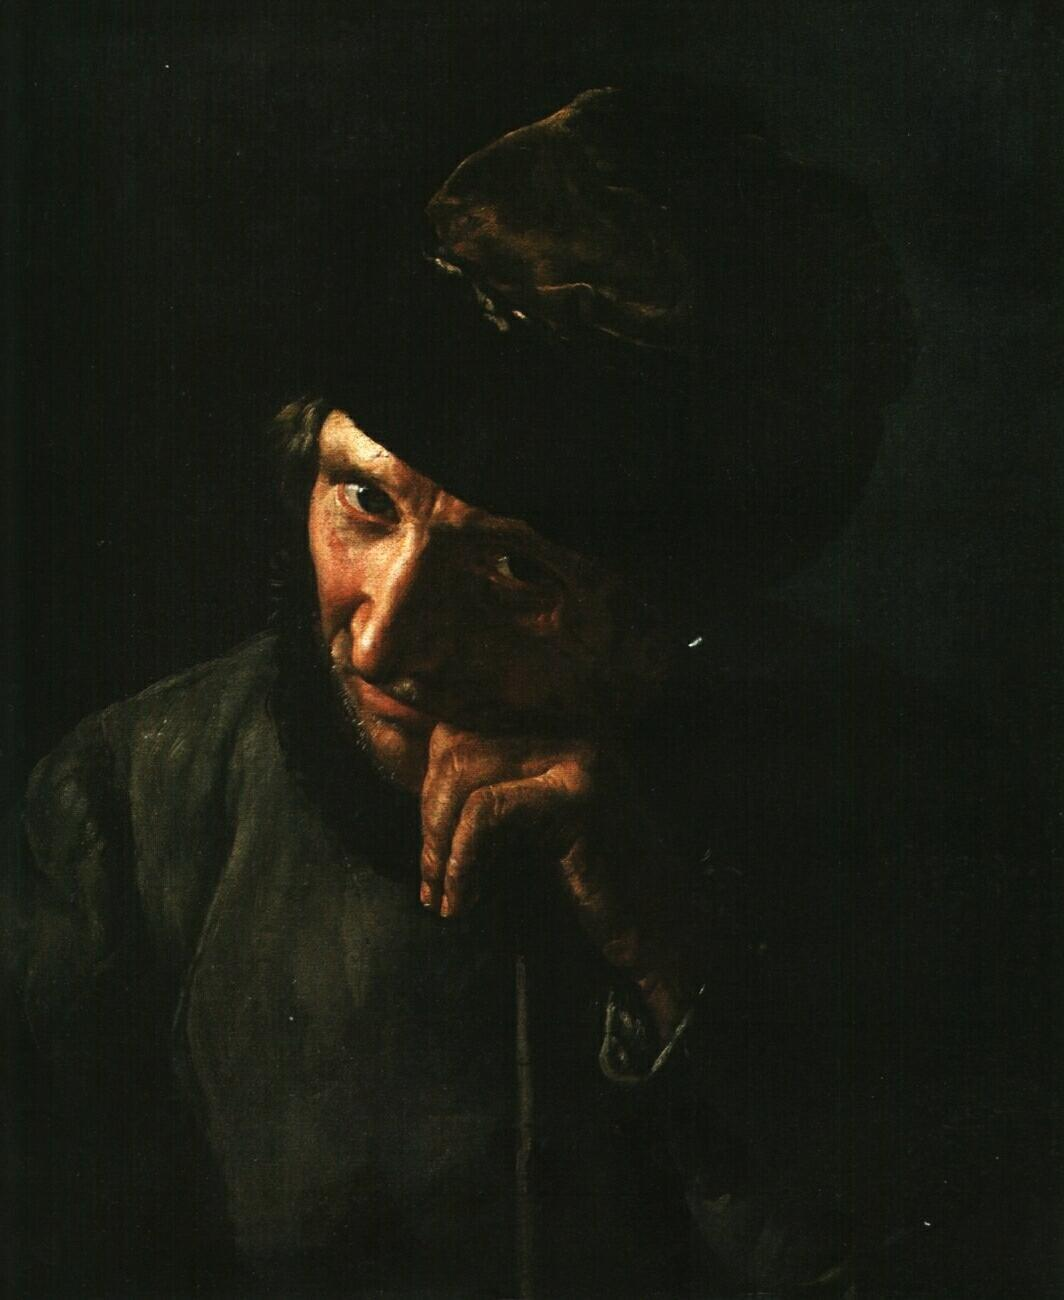 The coachman leaning on a whip handle - Vasily Tropinin